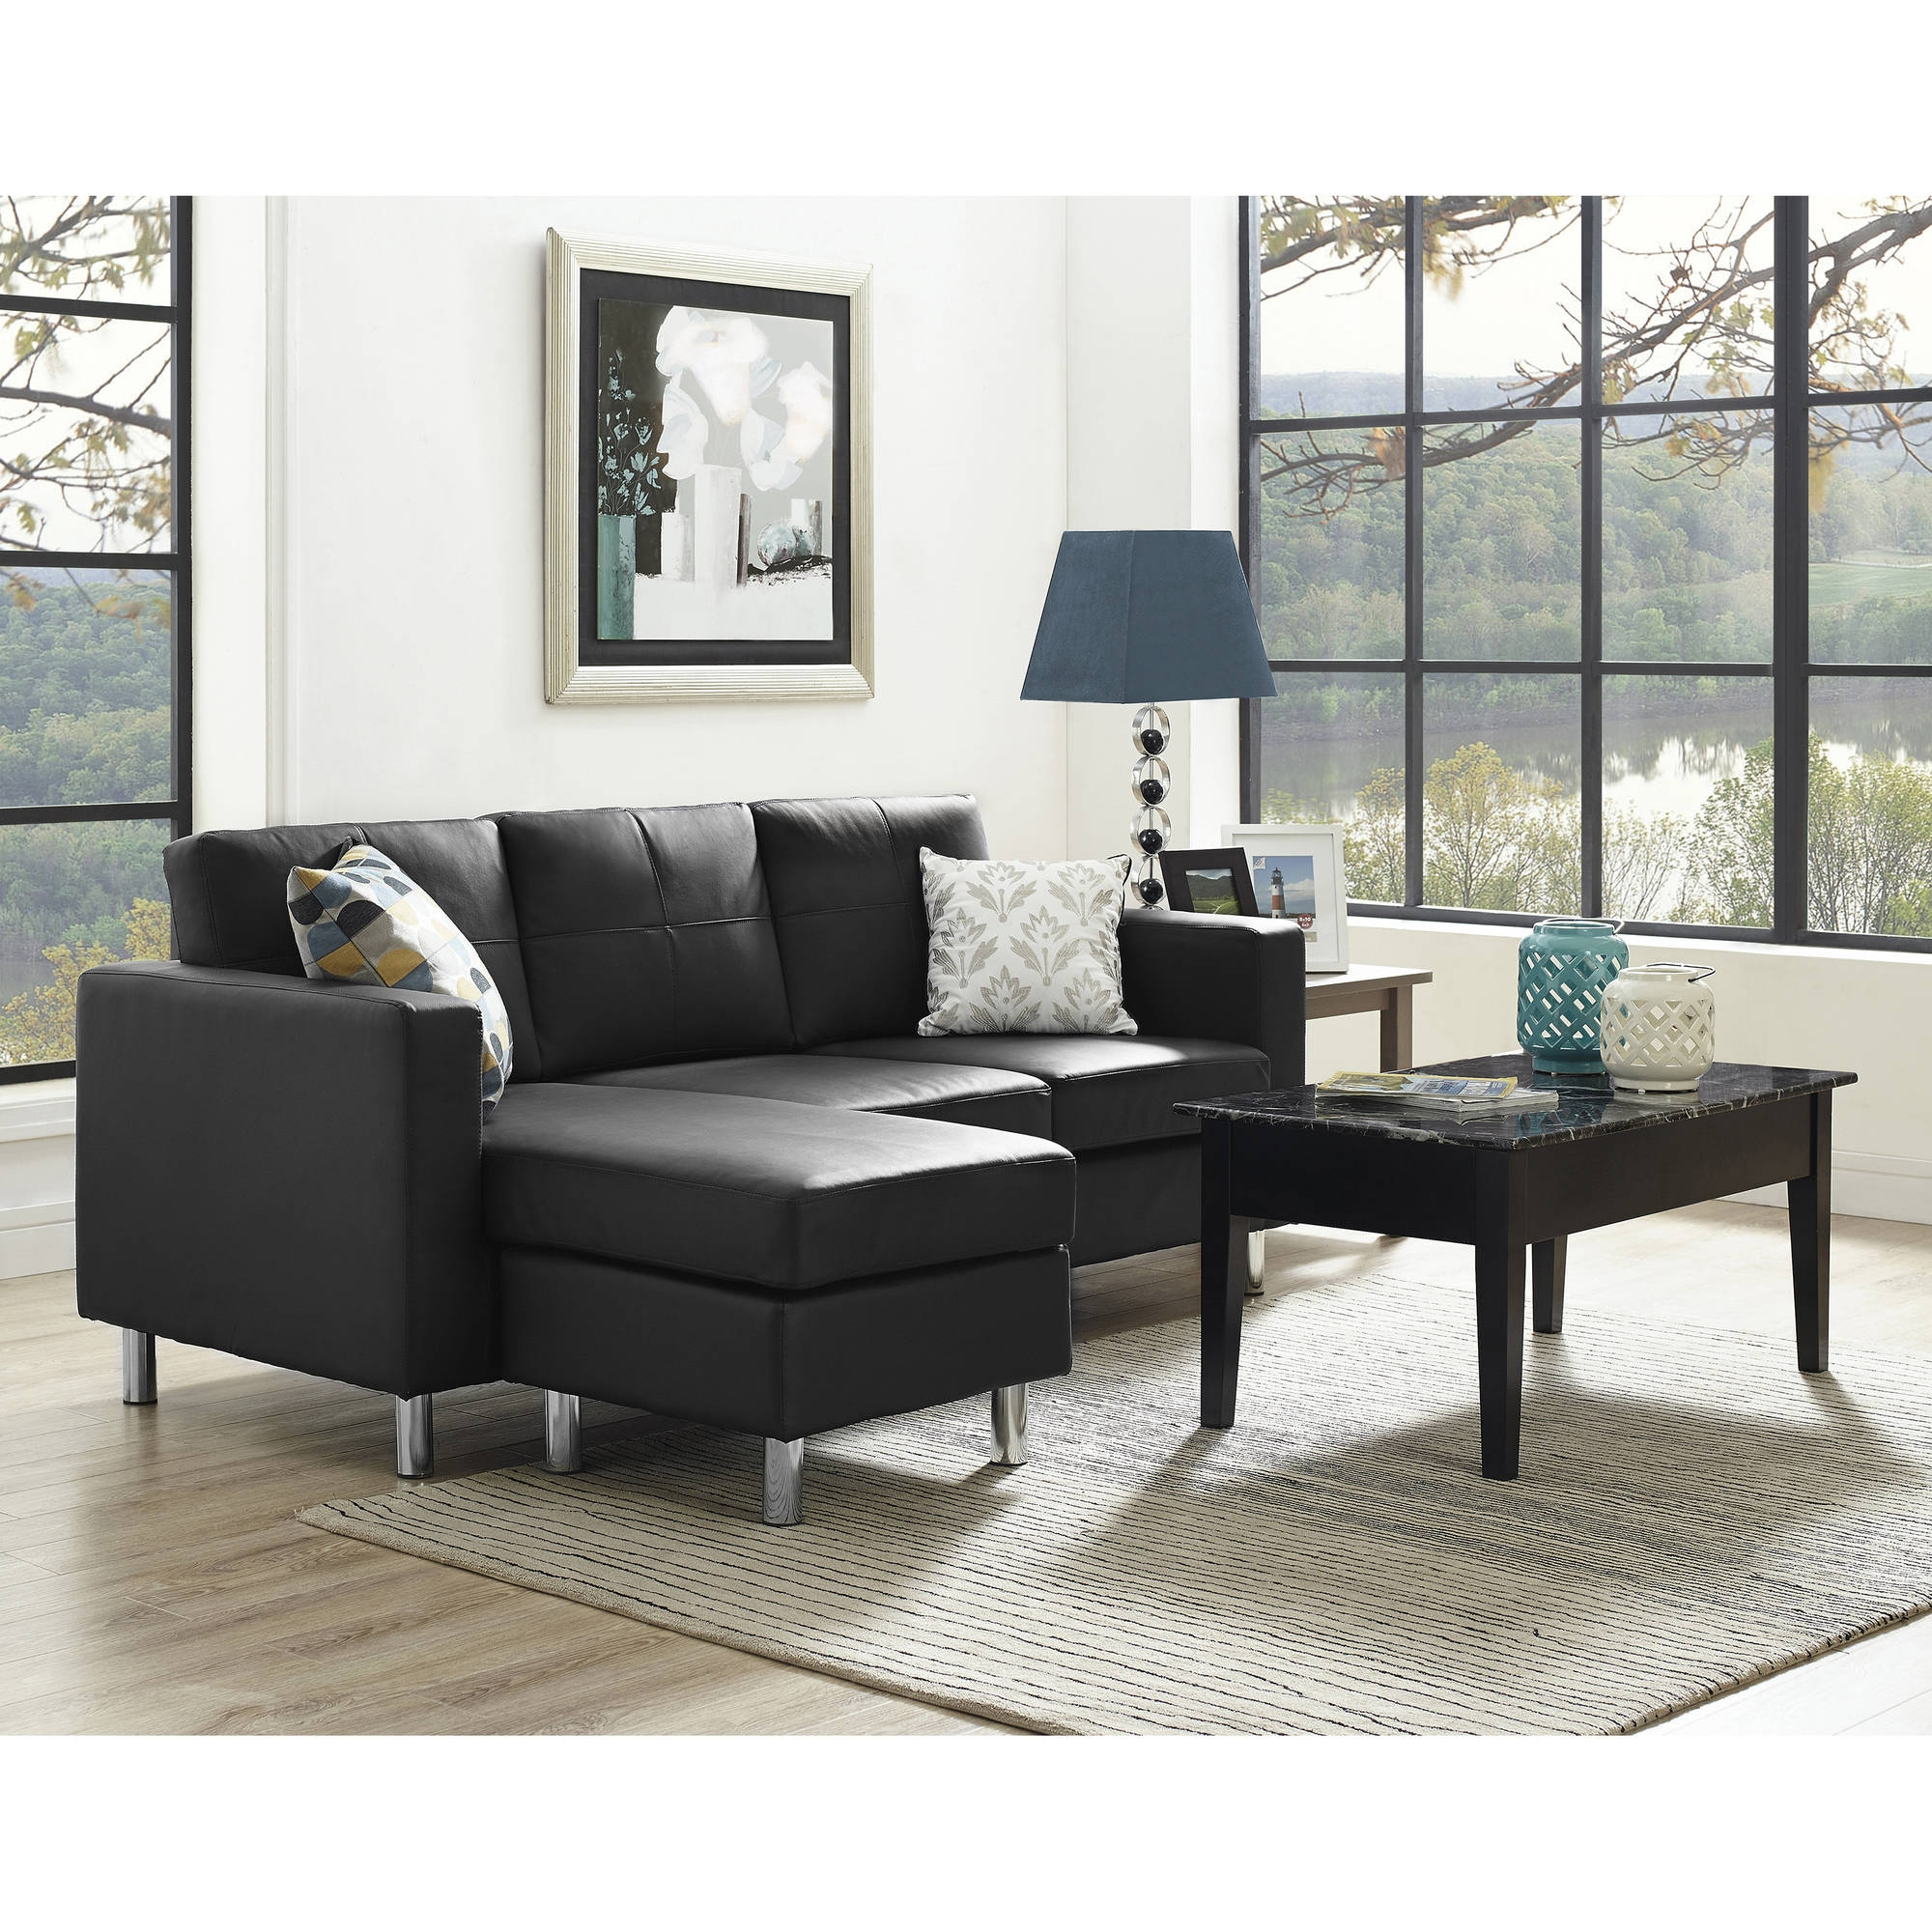 Dorel Living Small Spaces Configurable Sectional Sofa Multiple For Small Sectional Sofa (Image 3 of 15)